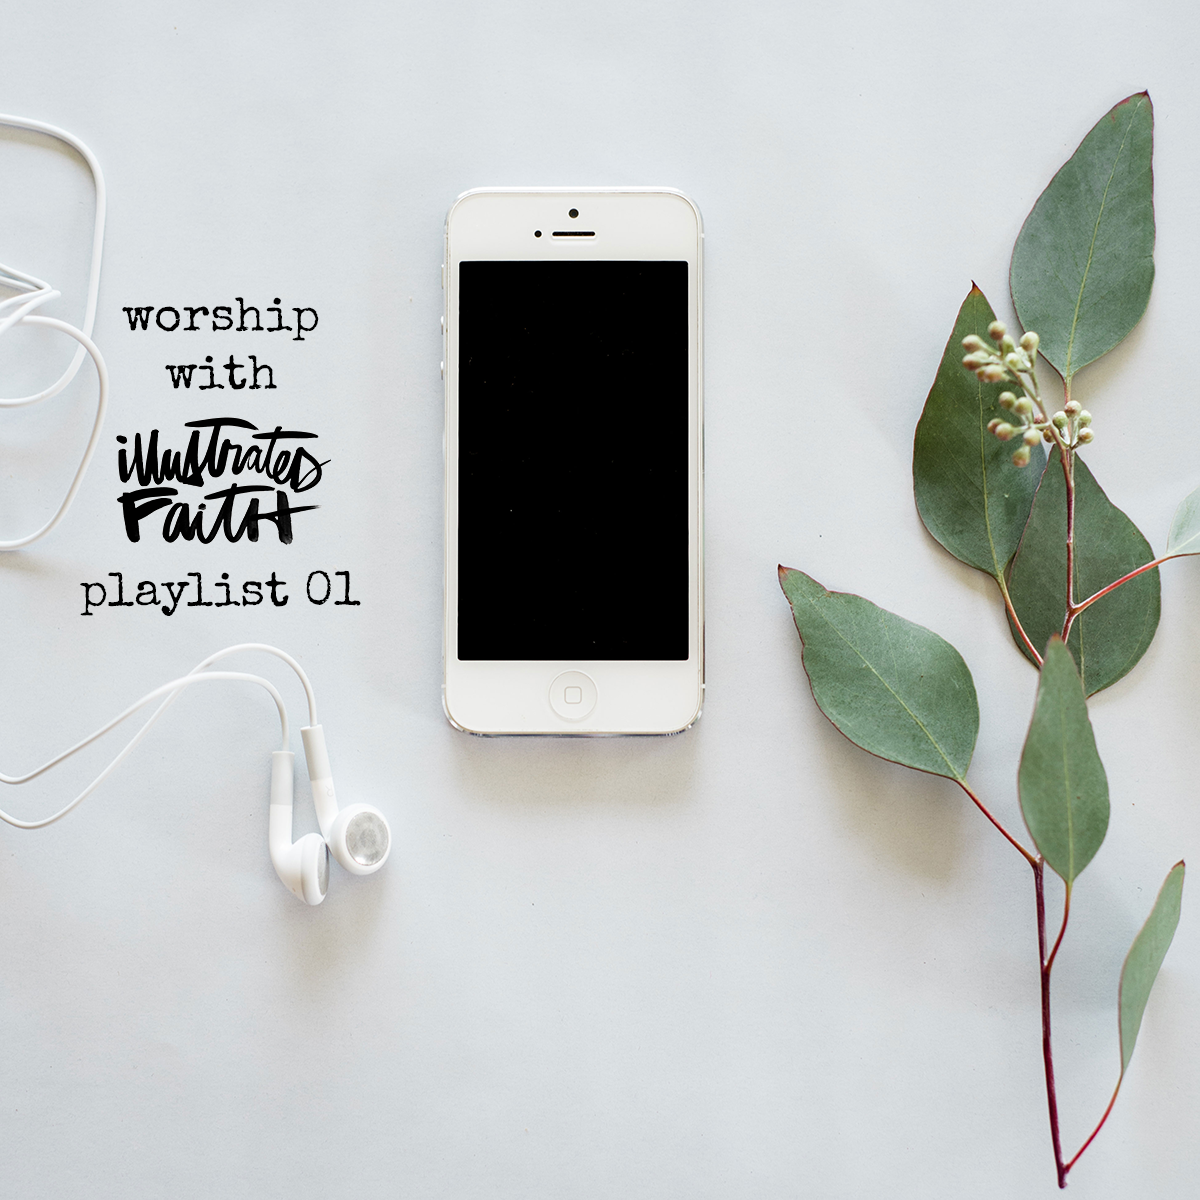 Worship with Illustrated Faith   Spotify Playlist 01 for Bible journaling by April Crosier